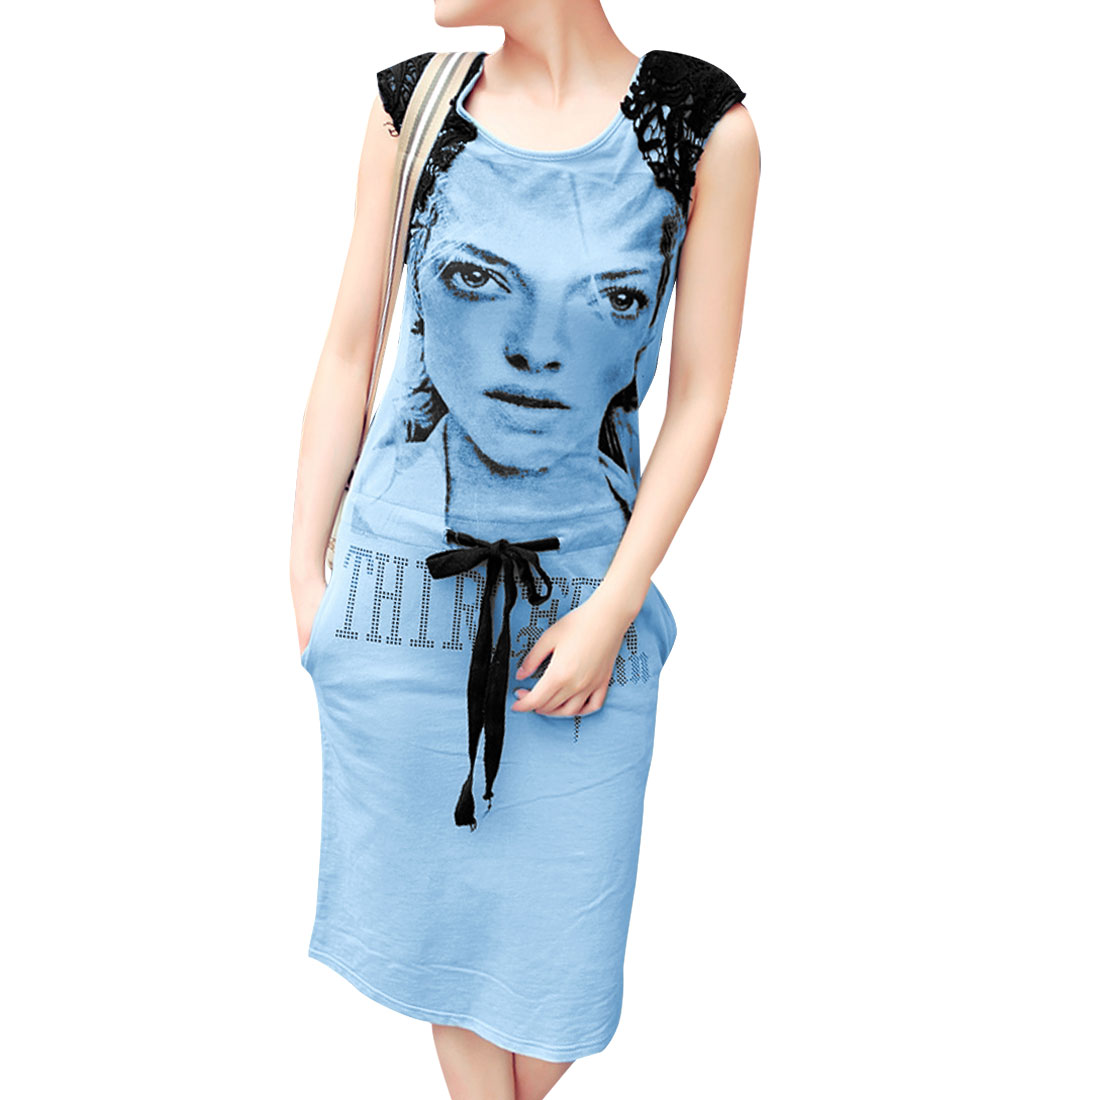 Lady Zipper Back Drawstring Waist Portrait Prints Light Blue Dress XS